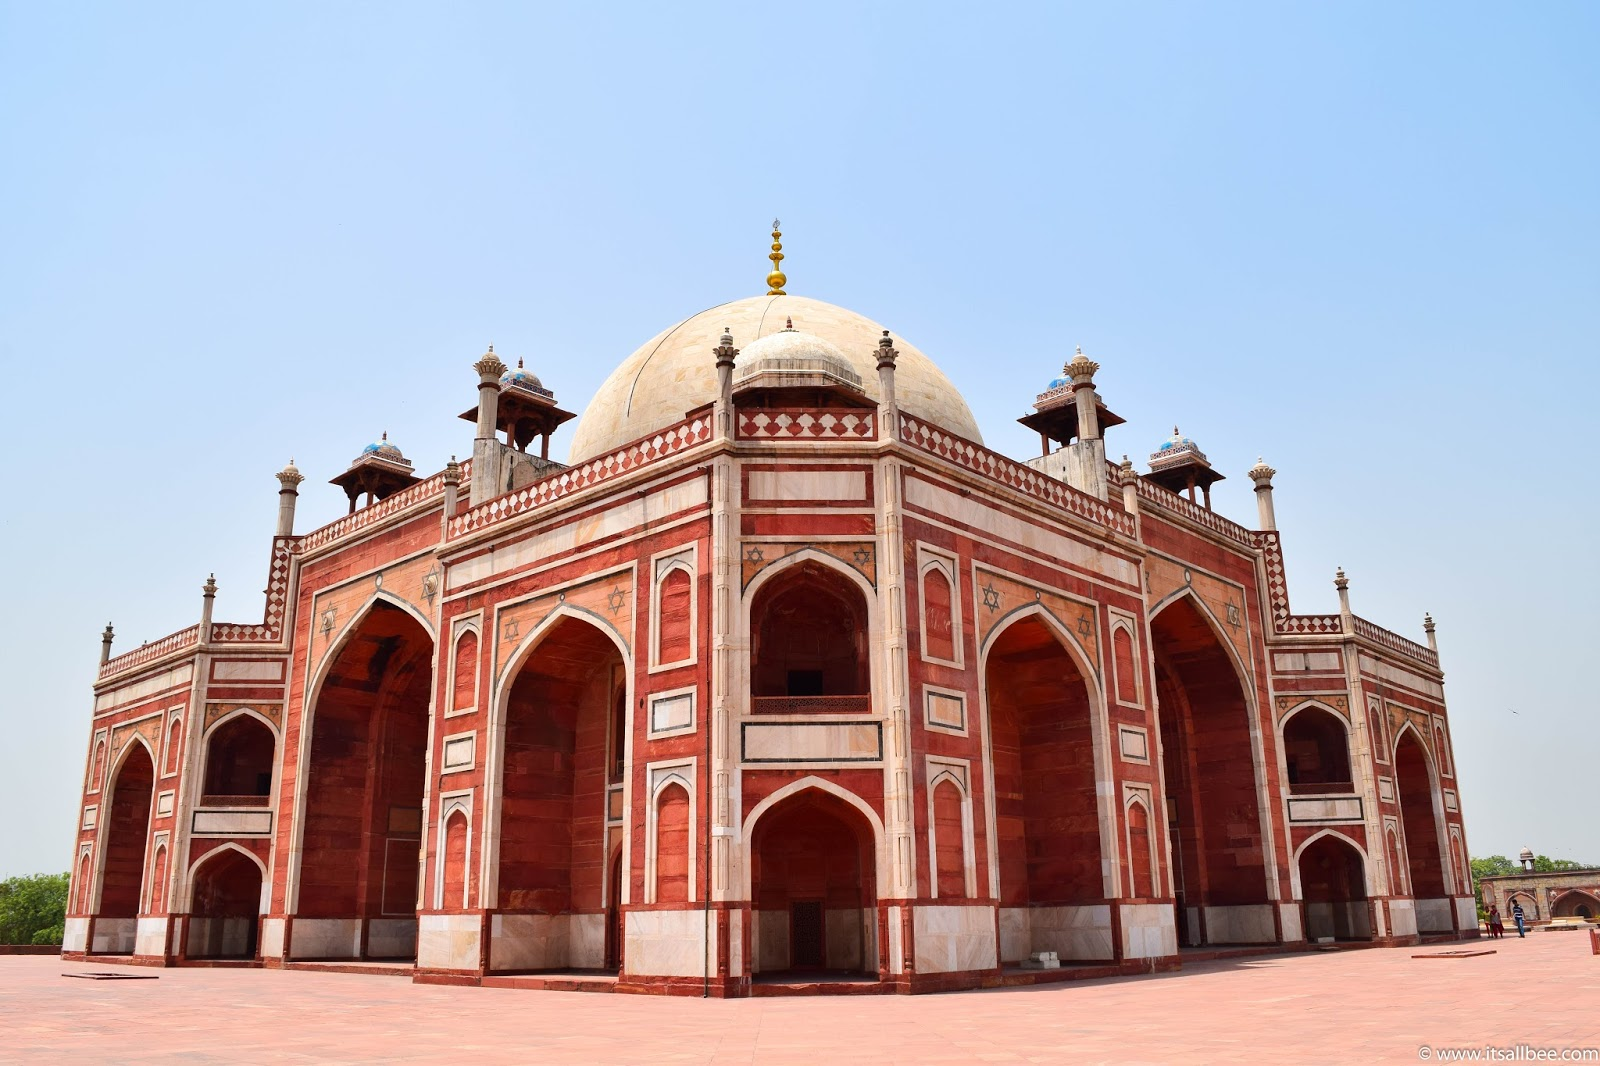 India - places to visit in New Delhi - Humayun's Tomb